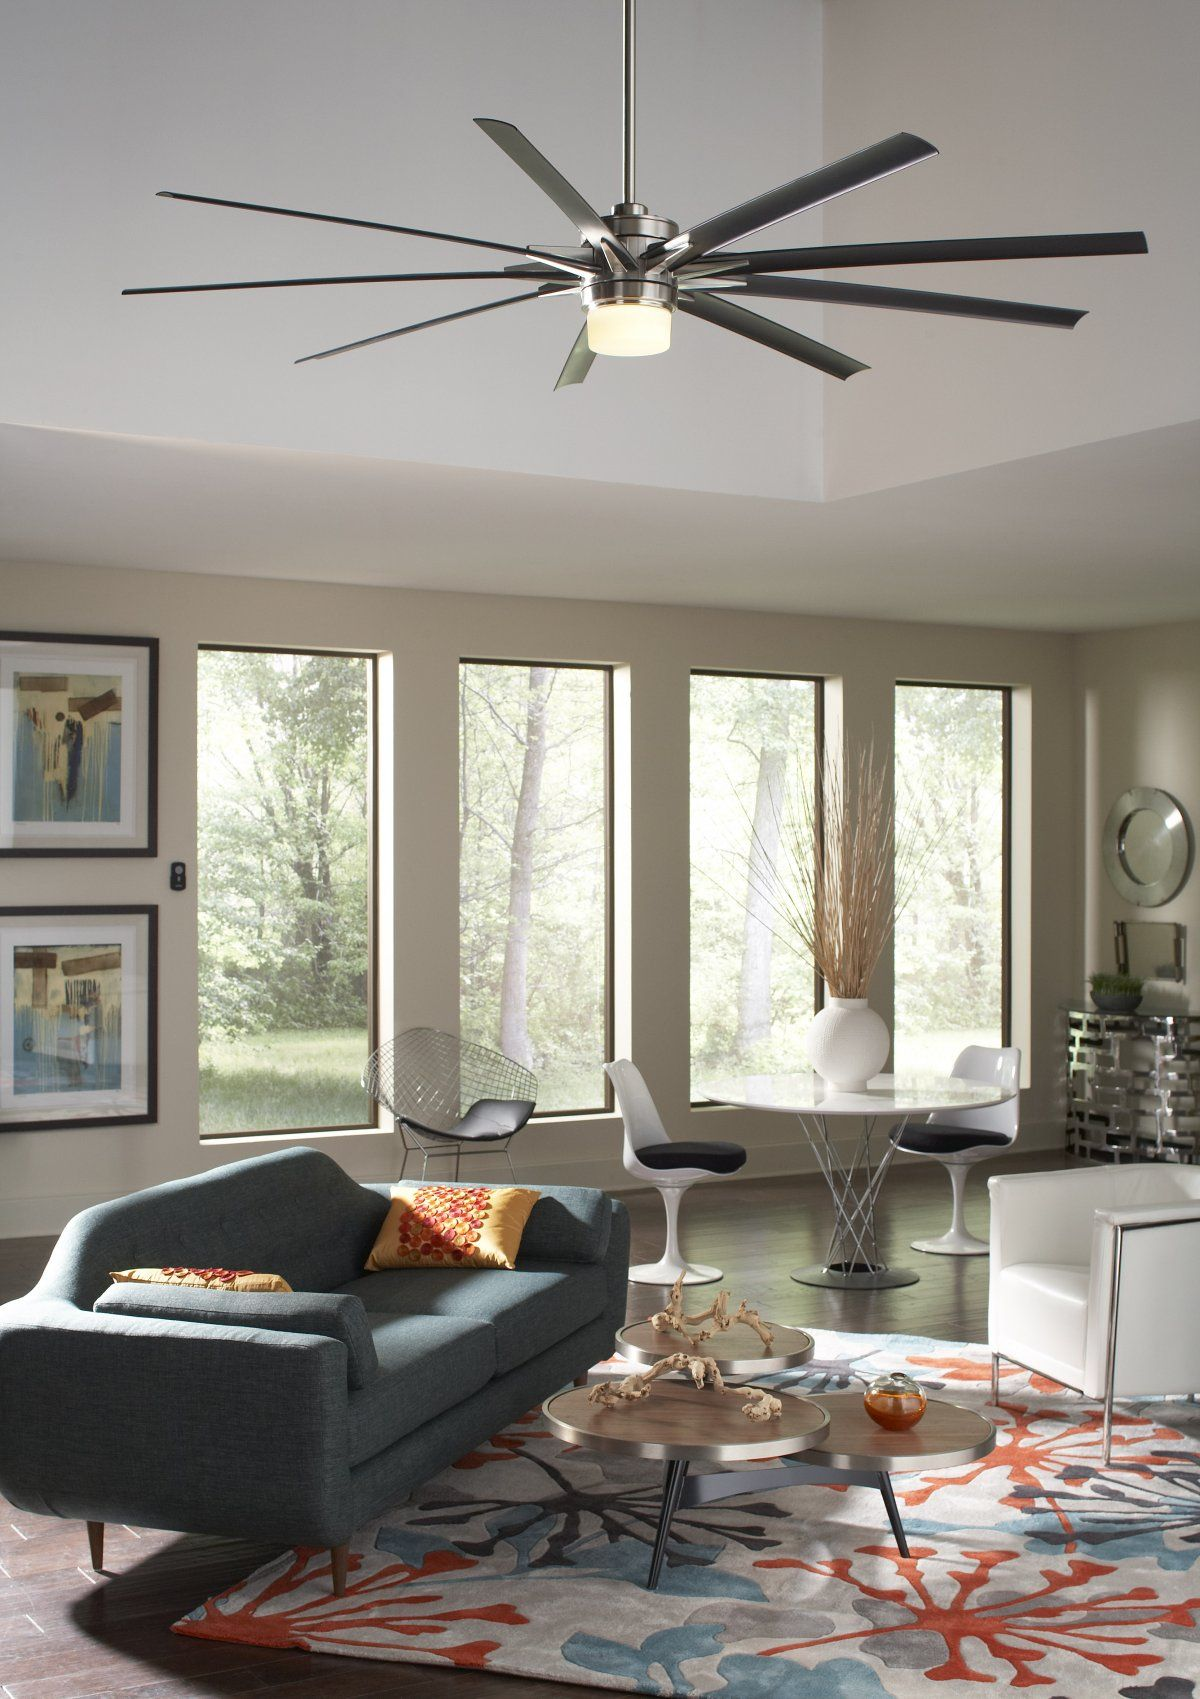 Home Decorations Ceiling Fans Decorating With Ceiling Fans Interior Design Ideas That